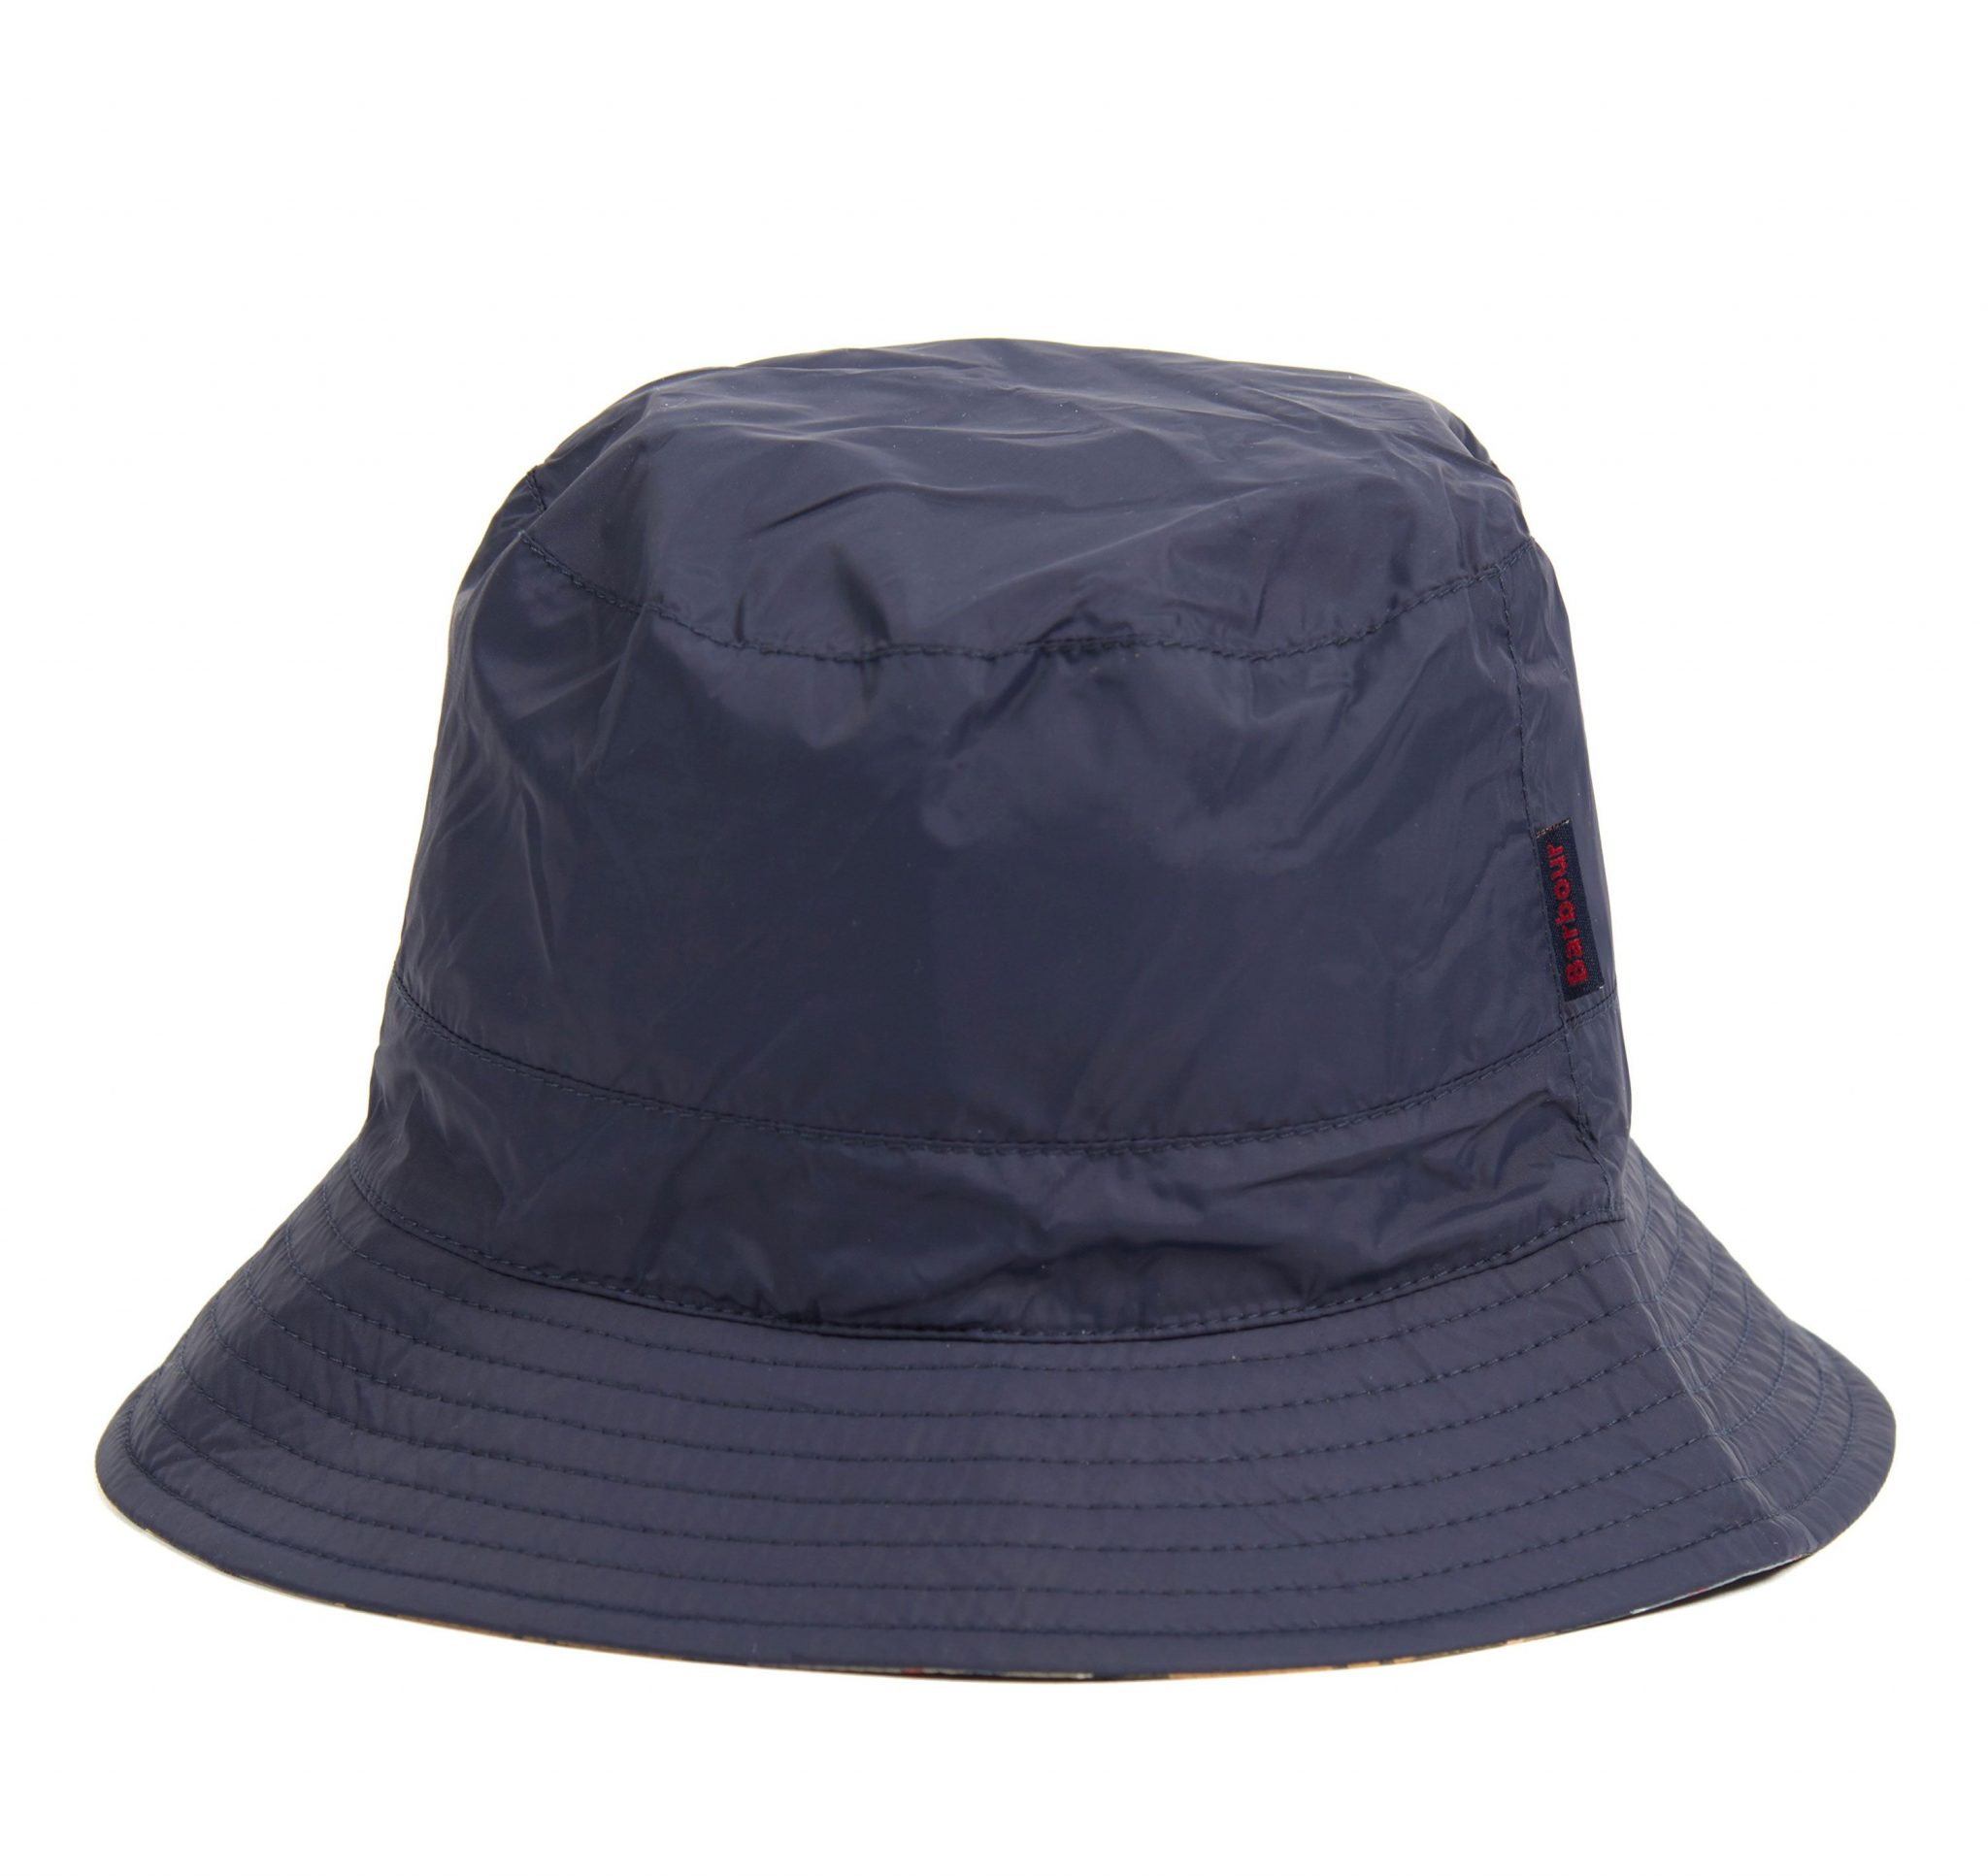 Barbour Waterproof Reversible Navy-Tartan Hat 1